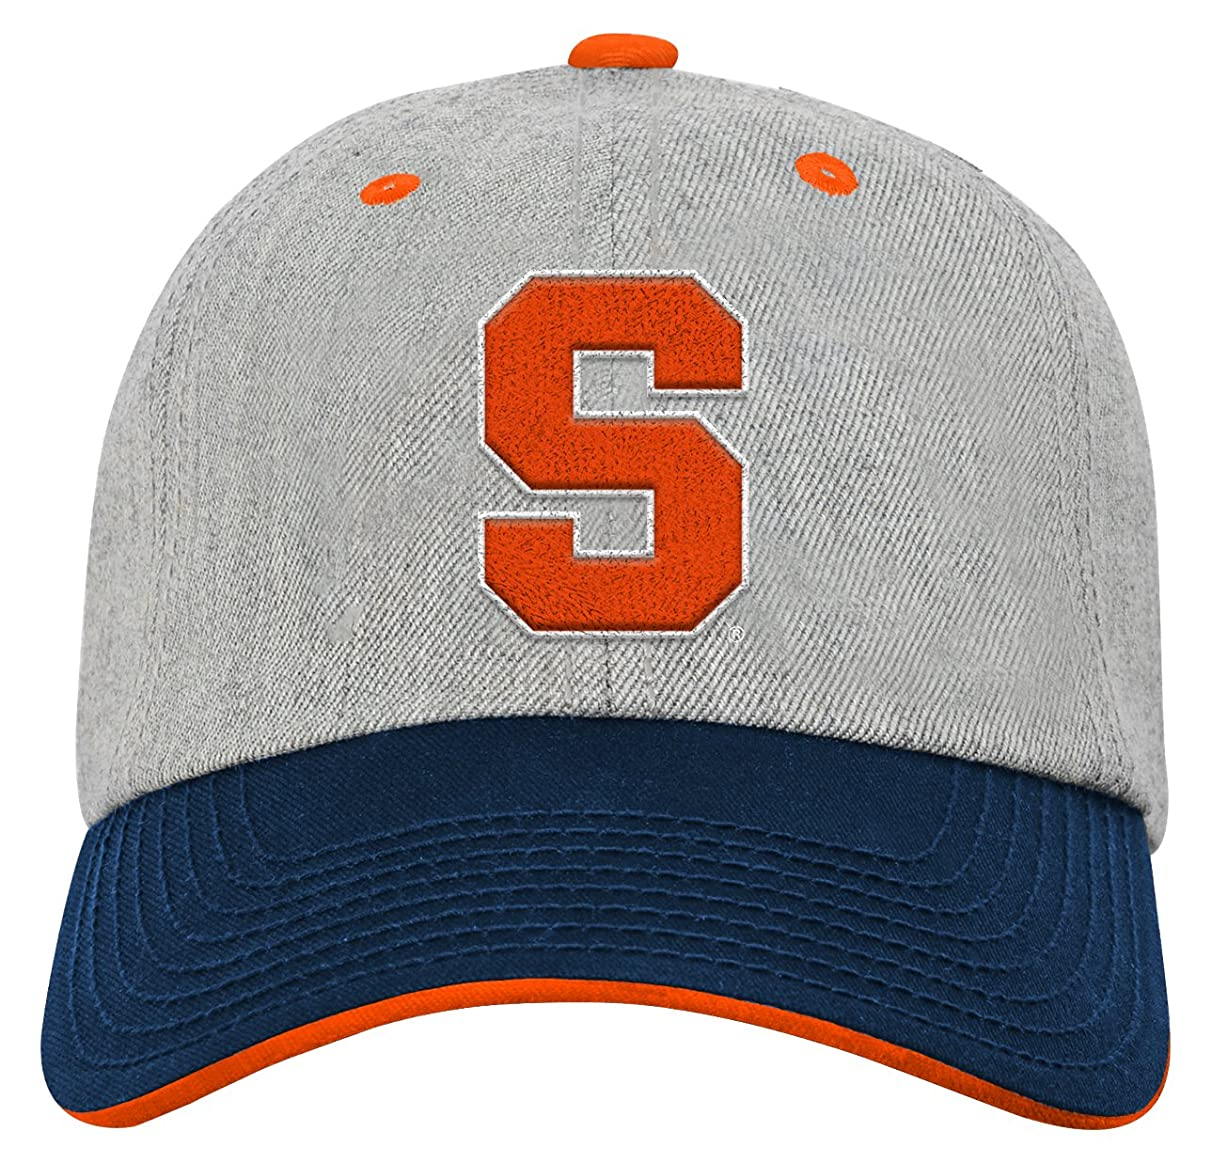 NCAA by Outerstuff NCAA Youth Boys Chainstitch Slouch Hat